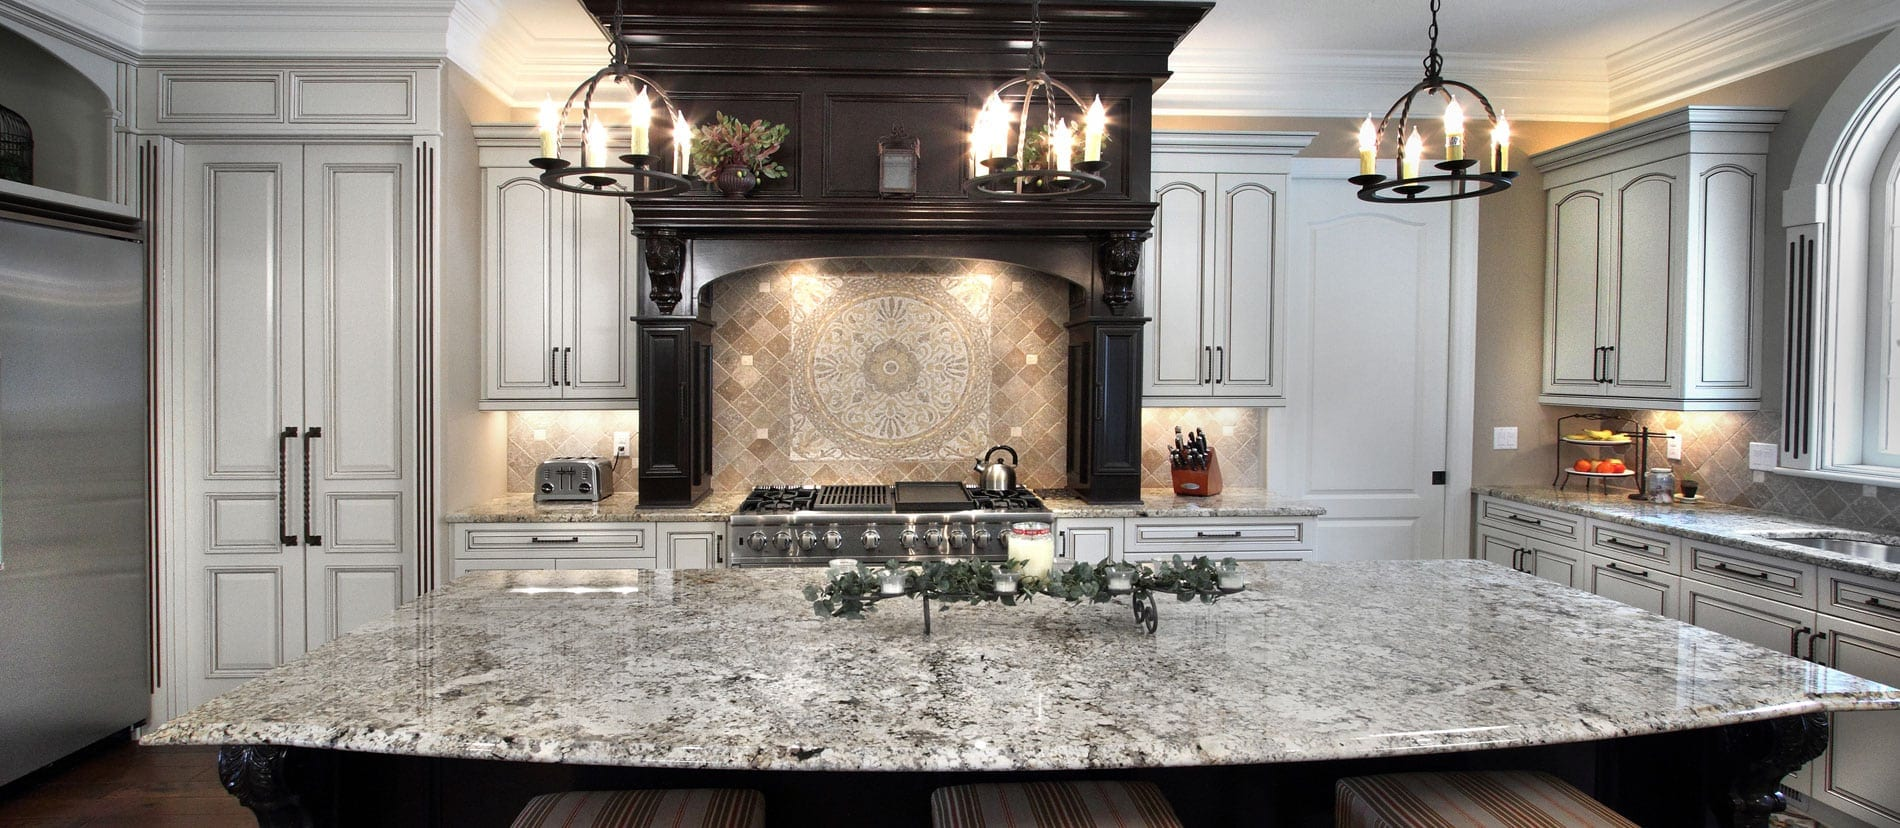 Countertops Pittsburgh Pa Granite Countertops Pittsburgh Home Decor